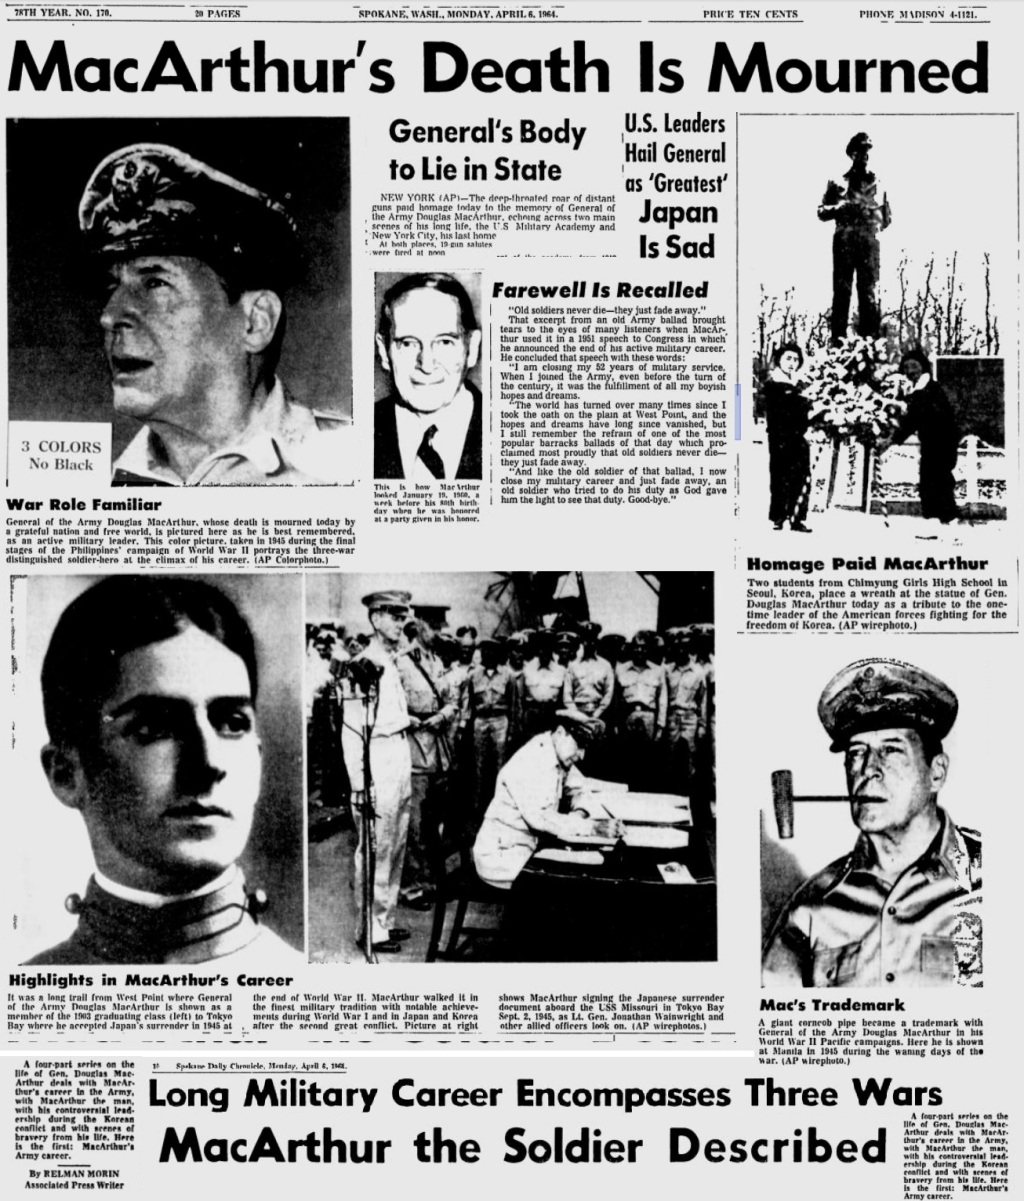 DouglasMacArthur_Death_SpokaneDailyChronicle_Apr61964